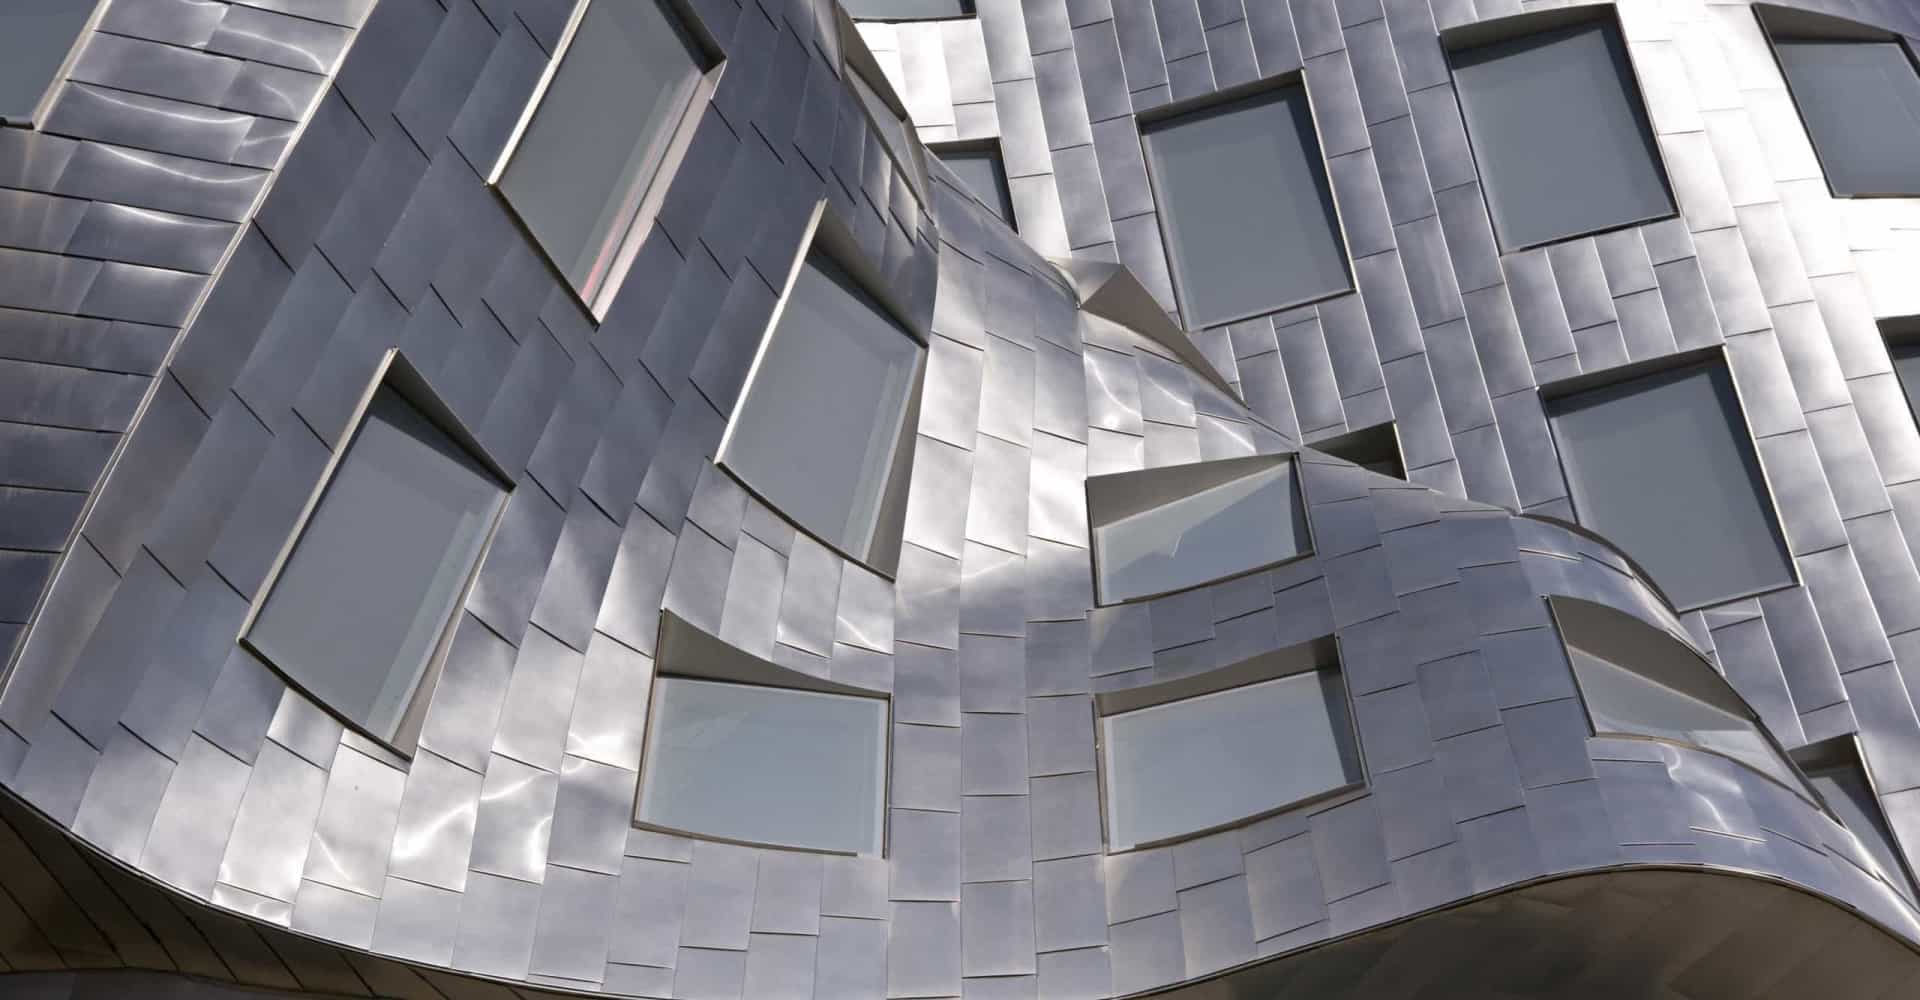 The genius of Frank Gehry